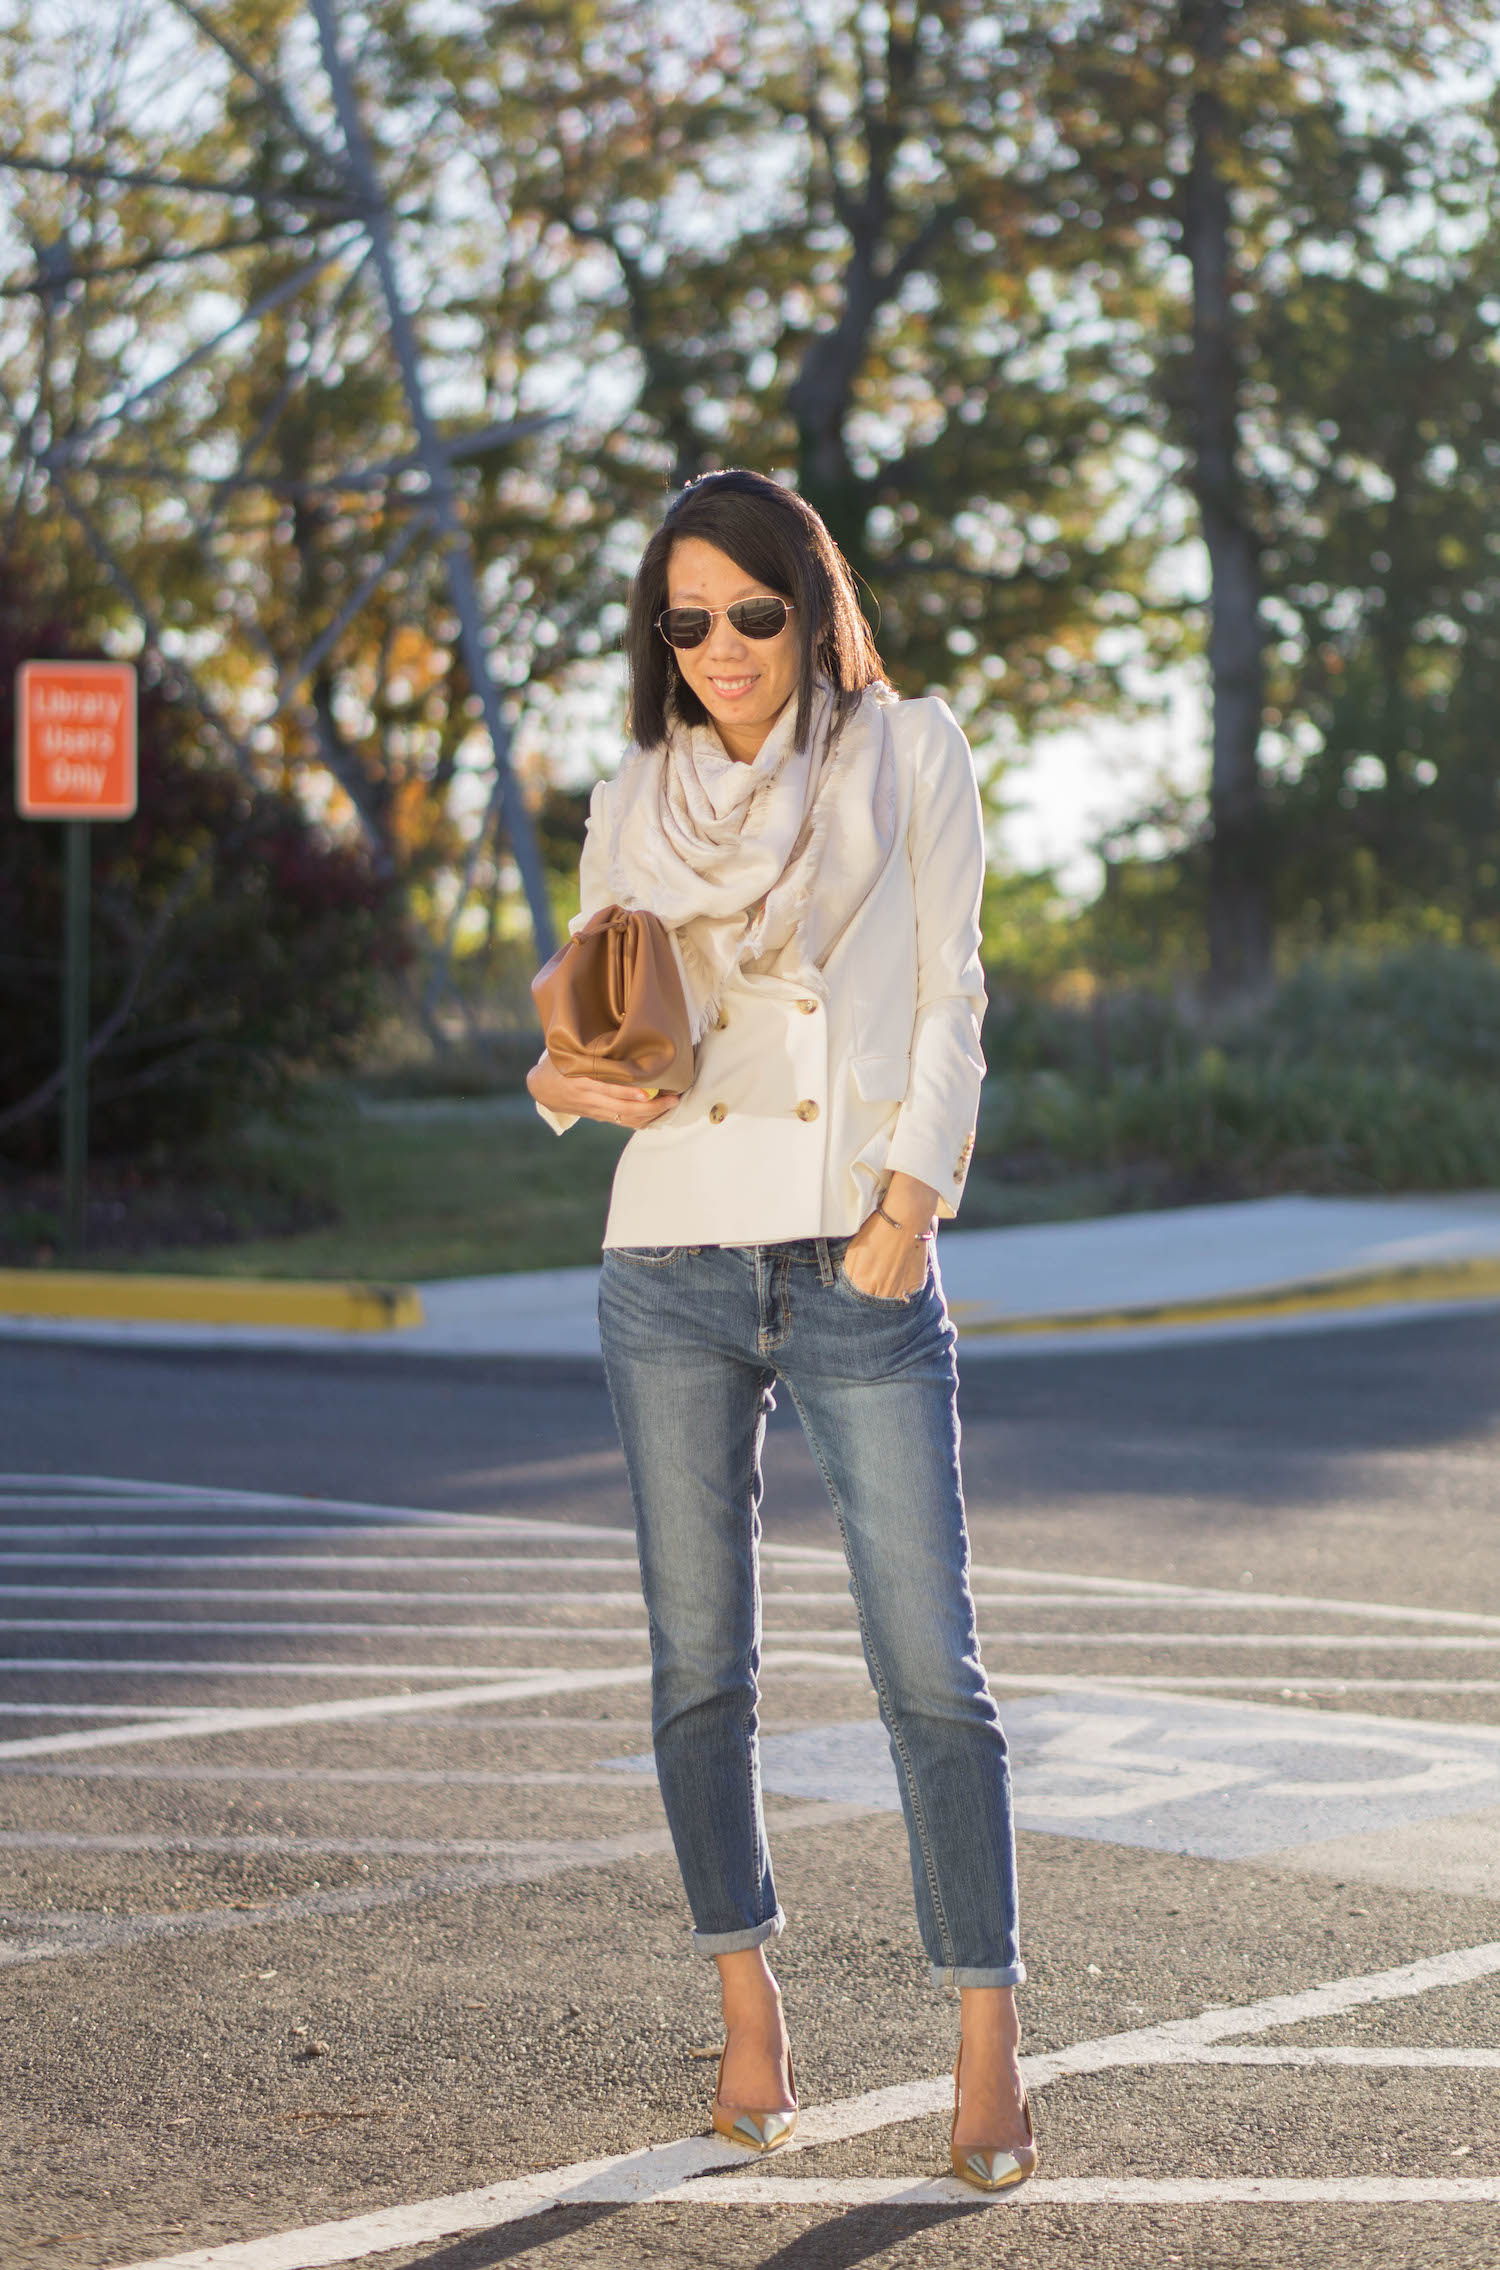 Tory Burch logo jacquard traveler scarf, J.Crew white double breasted blazer, Looks Like Summer Claudette leather crossbody bag, Banana Republic Factory girlfriend jeans, Tory Burch Penelope metallic cap-toe slingback pump